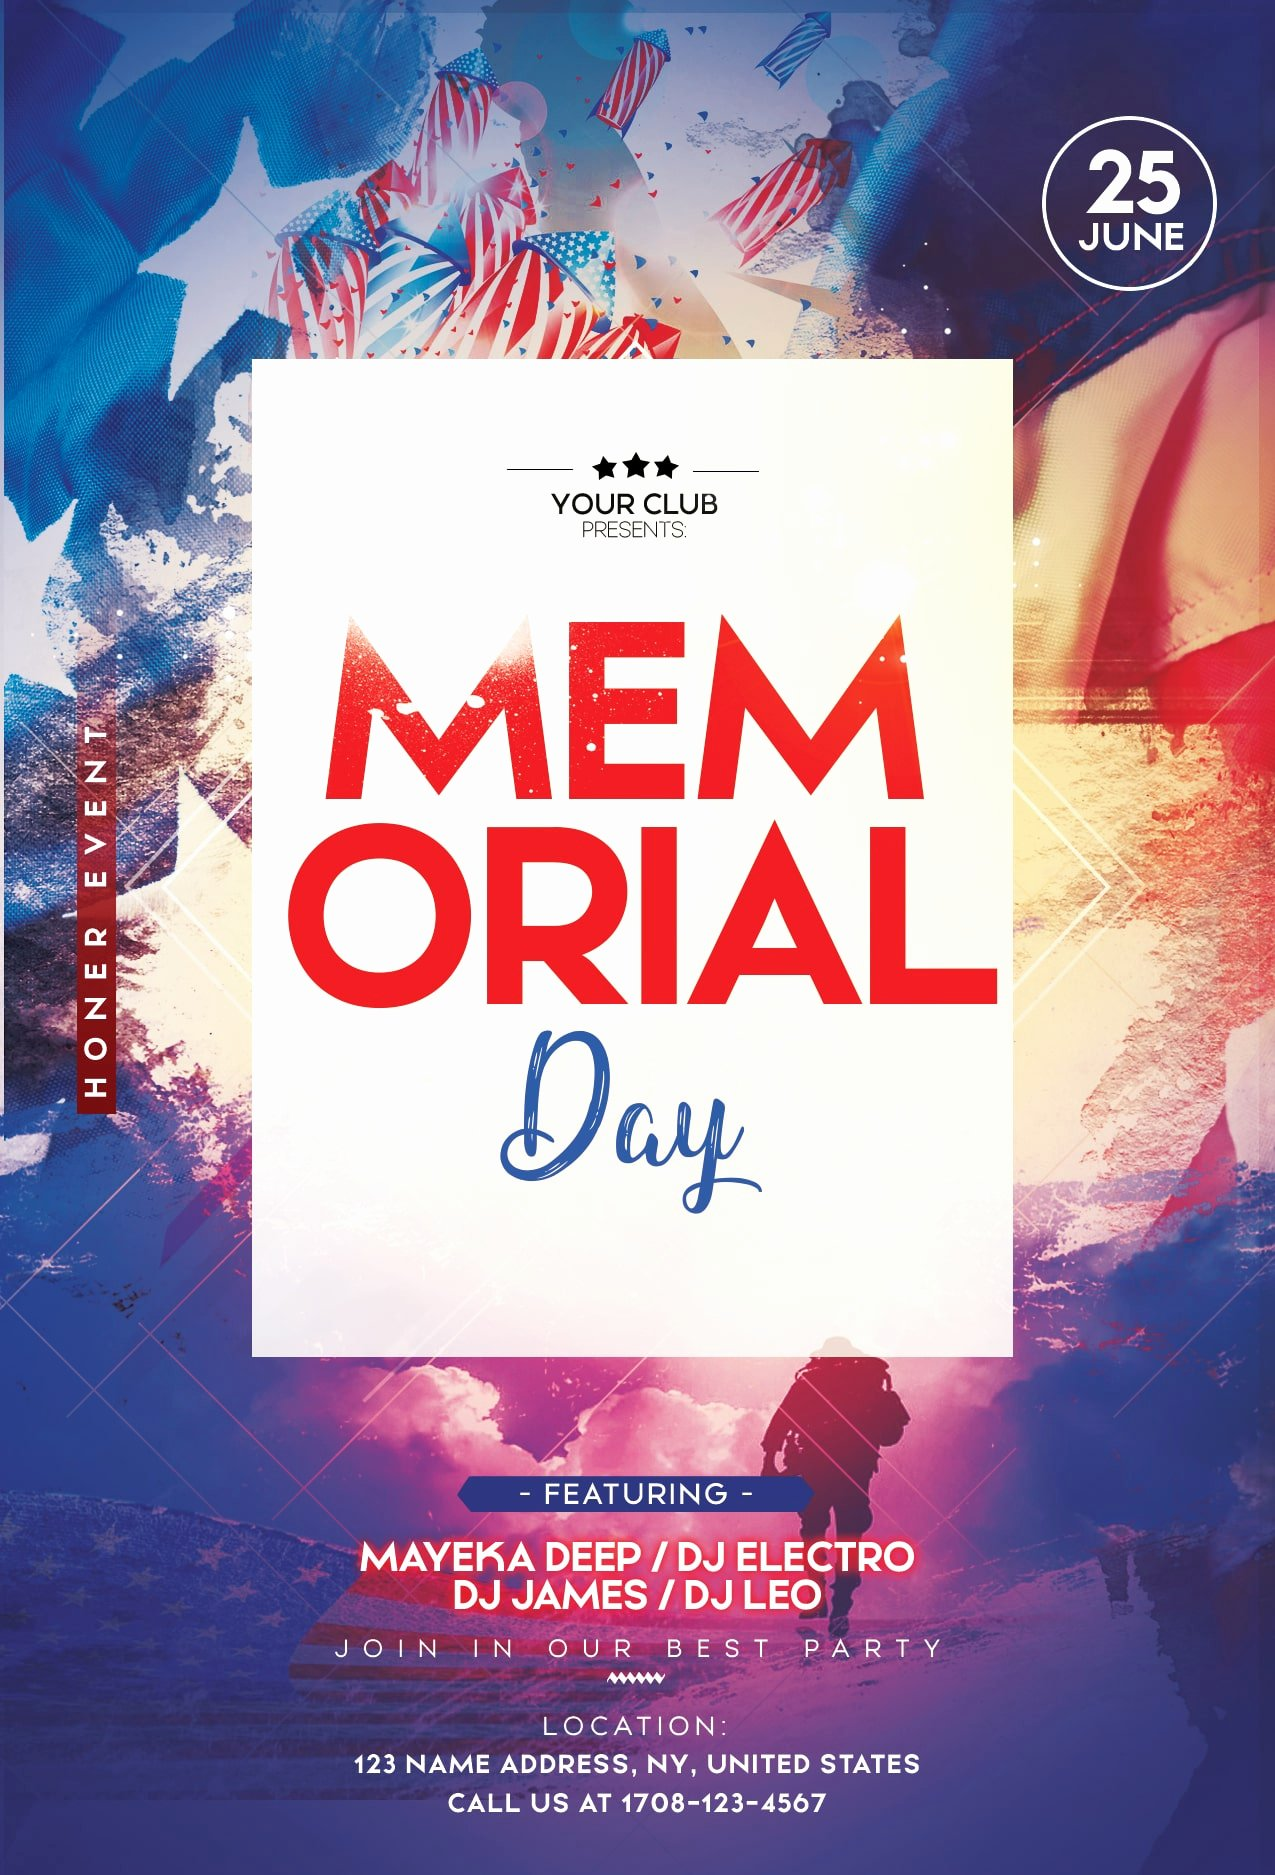 Memorial Day Flyer Template Free Inspirational Memorial Day 2 Free Psd Flyer Template Free Psd Flyer Templates Brochures Mockup & More